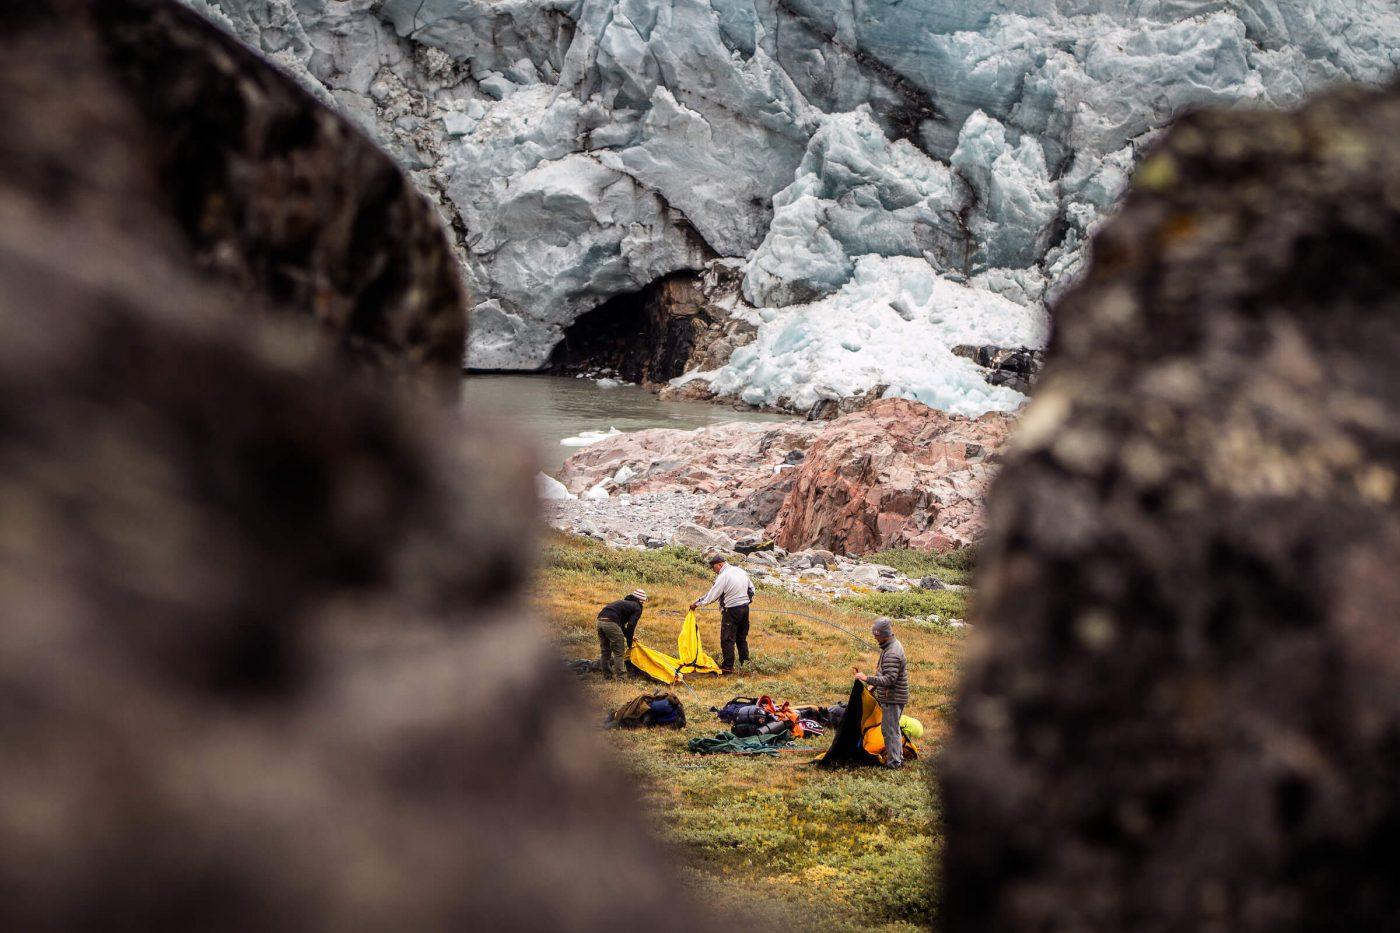 Setting up camp at Russell Glacier near Kangerlussuaq in Greenland. Photo by Mads Pihl